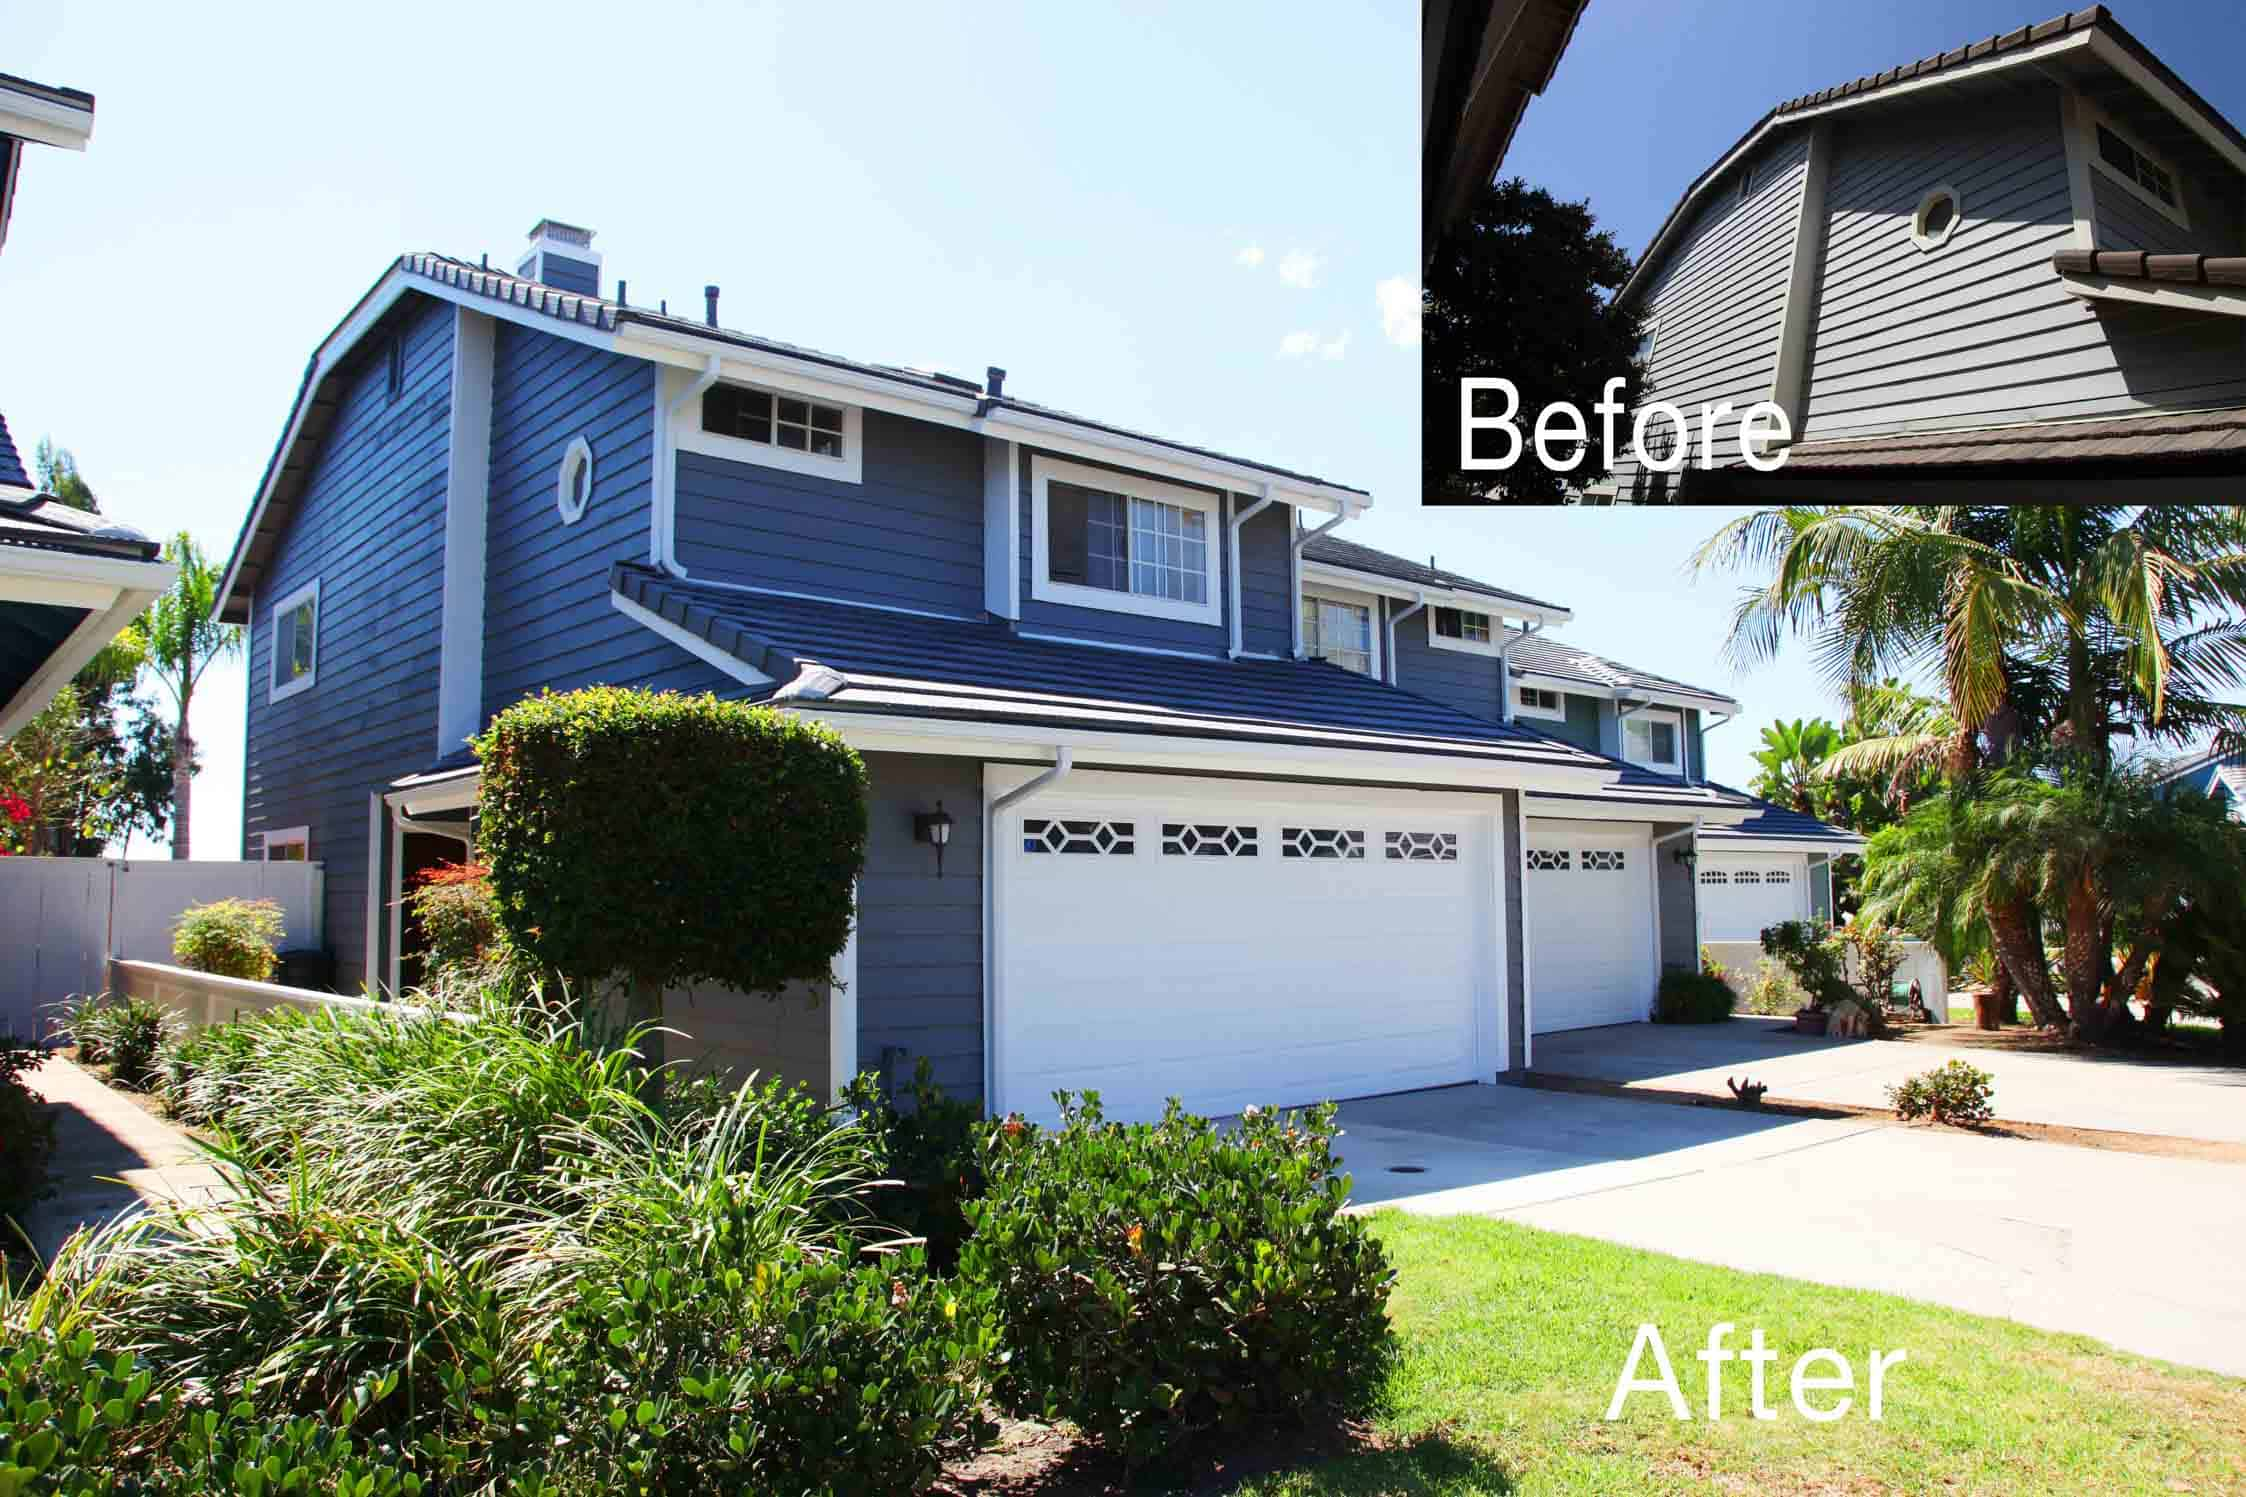 Encinitas Village Commercial Painting and Reconstruction